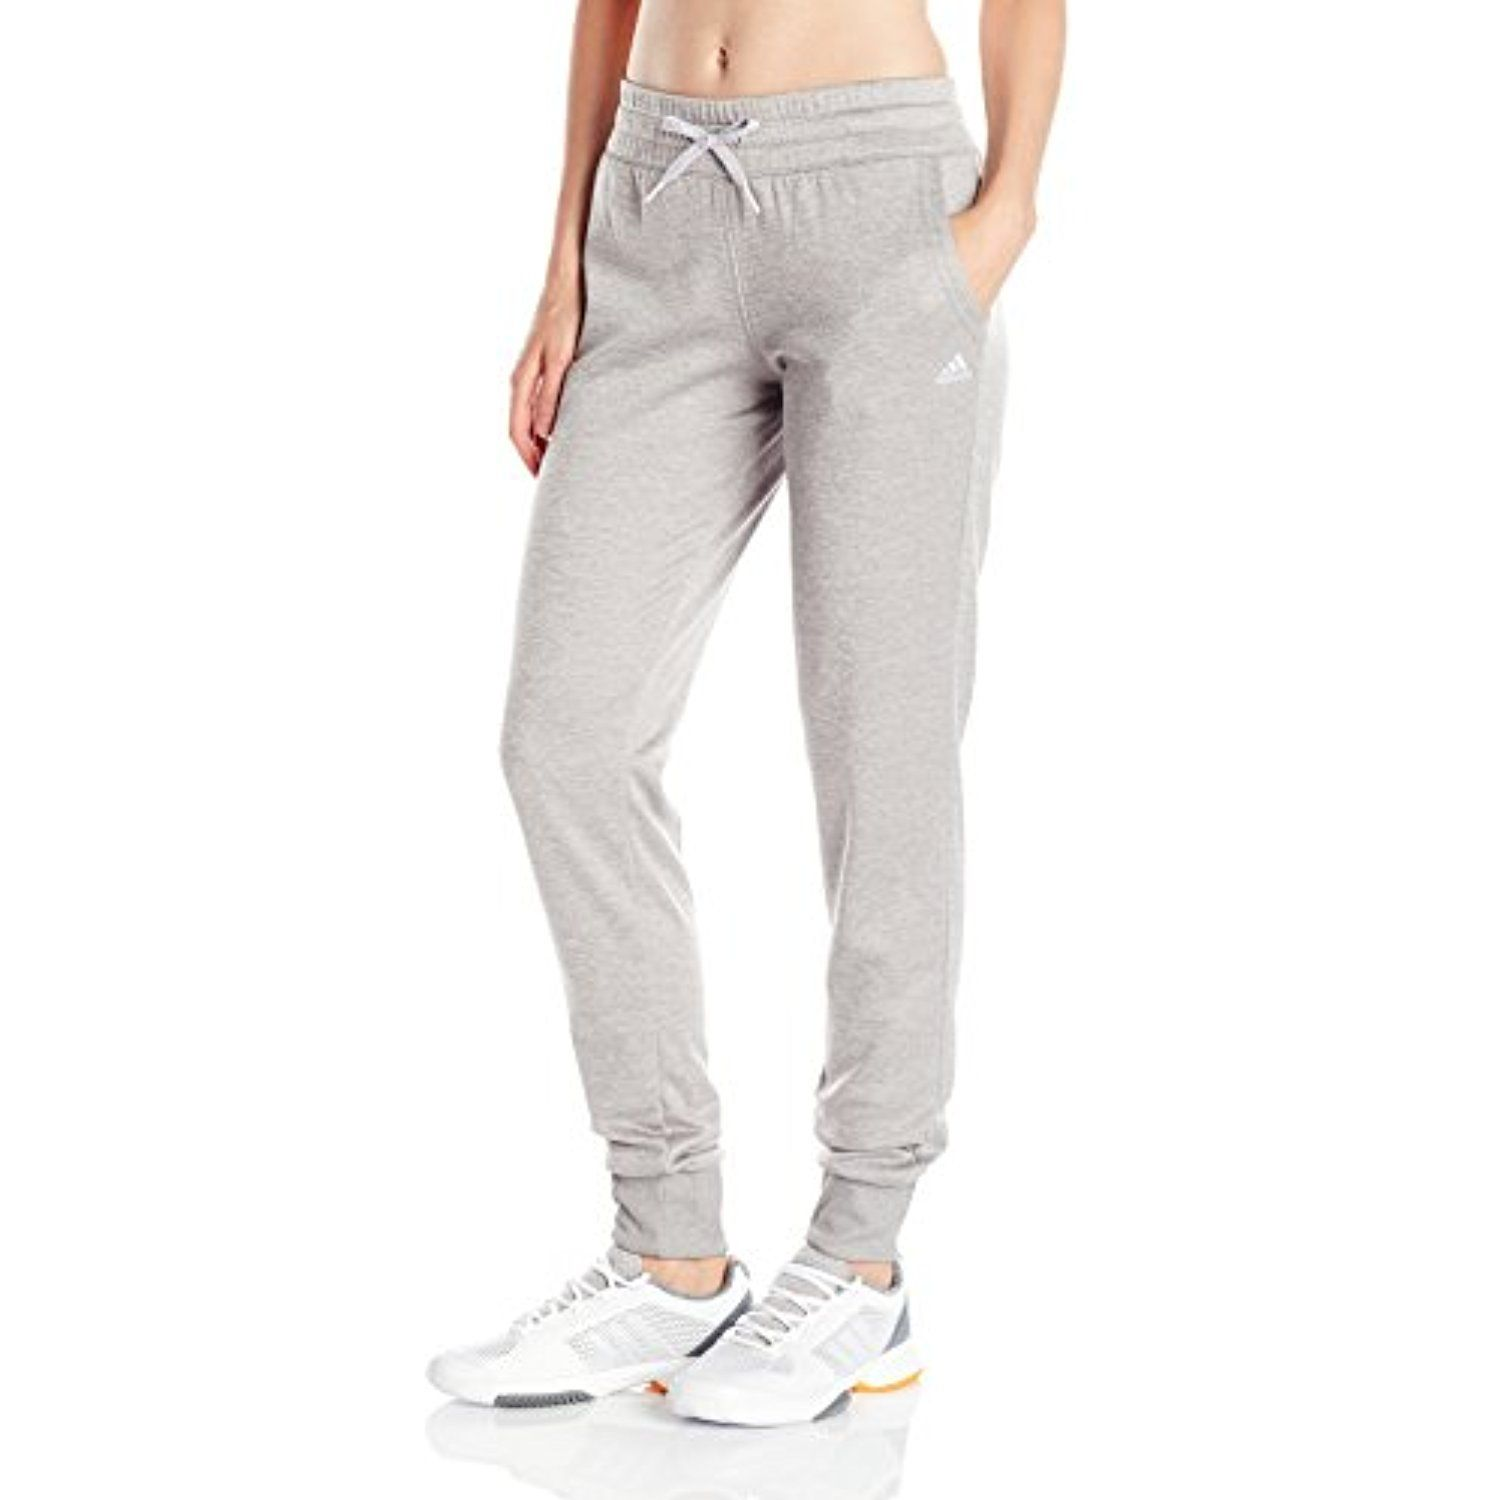 ca9e1b437 adidas Womens Team Issue fleece Jogger Pant * Details can be found by  clicking on the image. (This is an affiliate link) #Pants